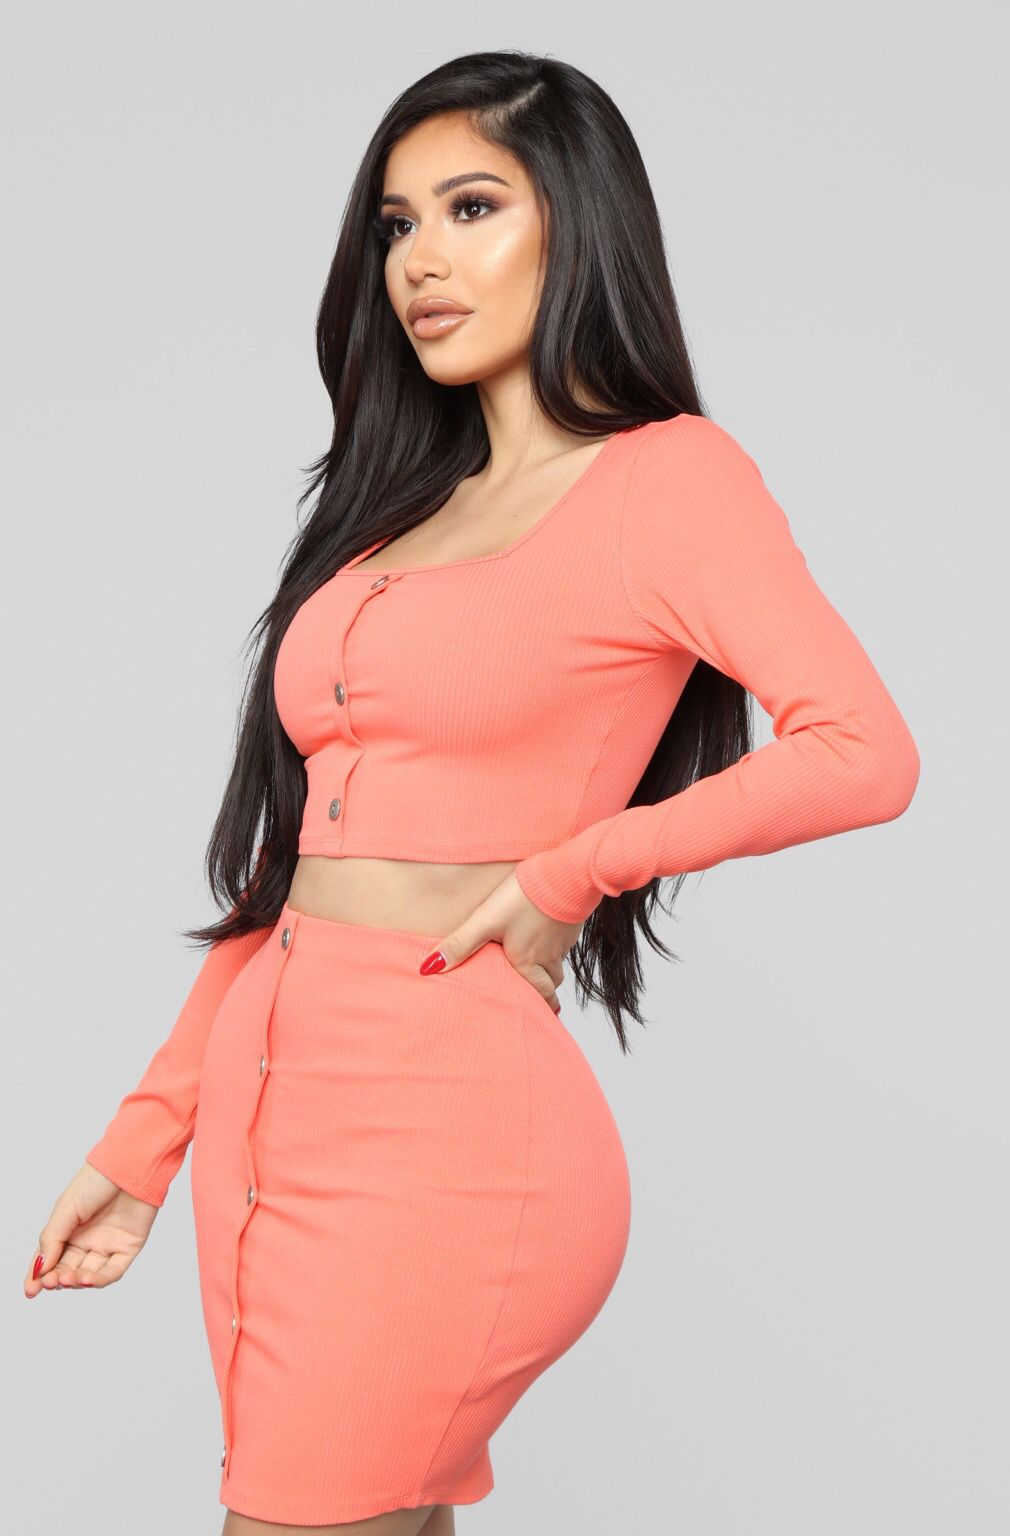 53aaa58fbd82 Don't Push My Buttons Skirt Set - Coral Hot Outfits, Dress Outfits,